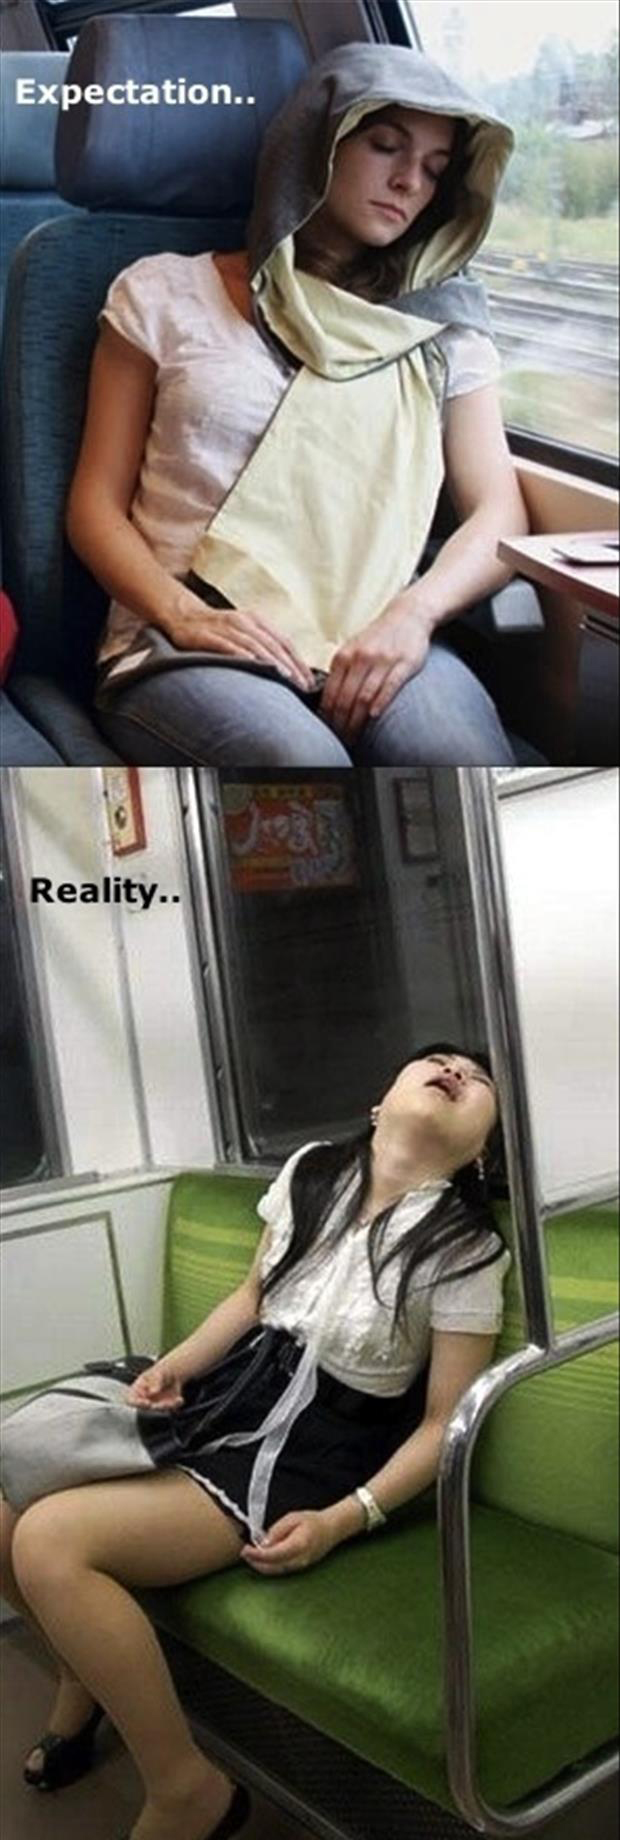 Best of Expectation Vs Reality Pictures- Sleeping on a bus